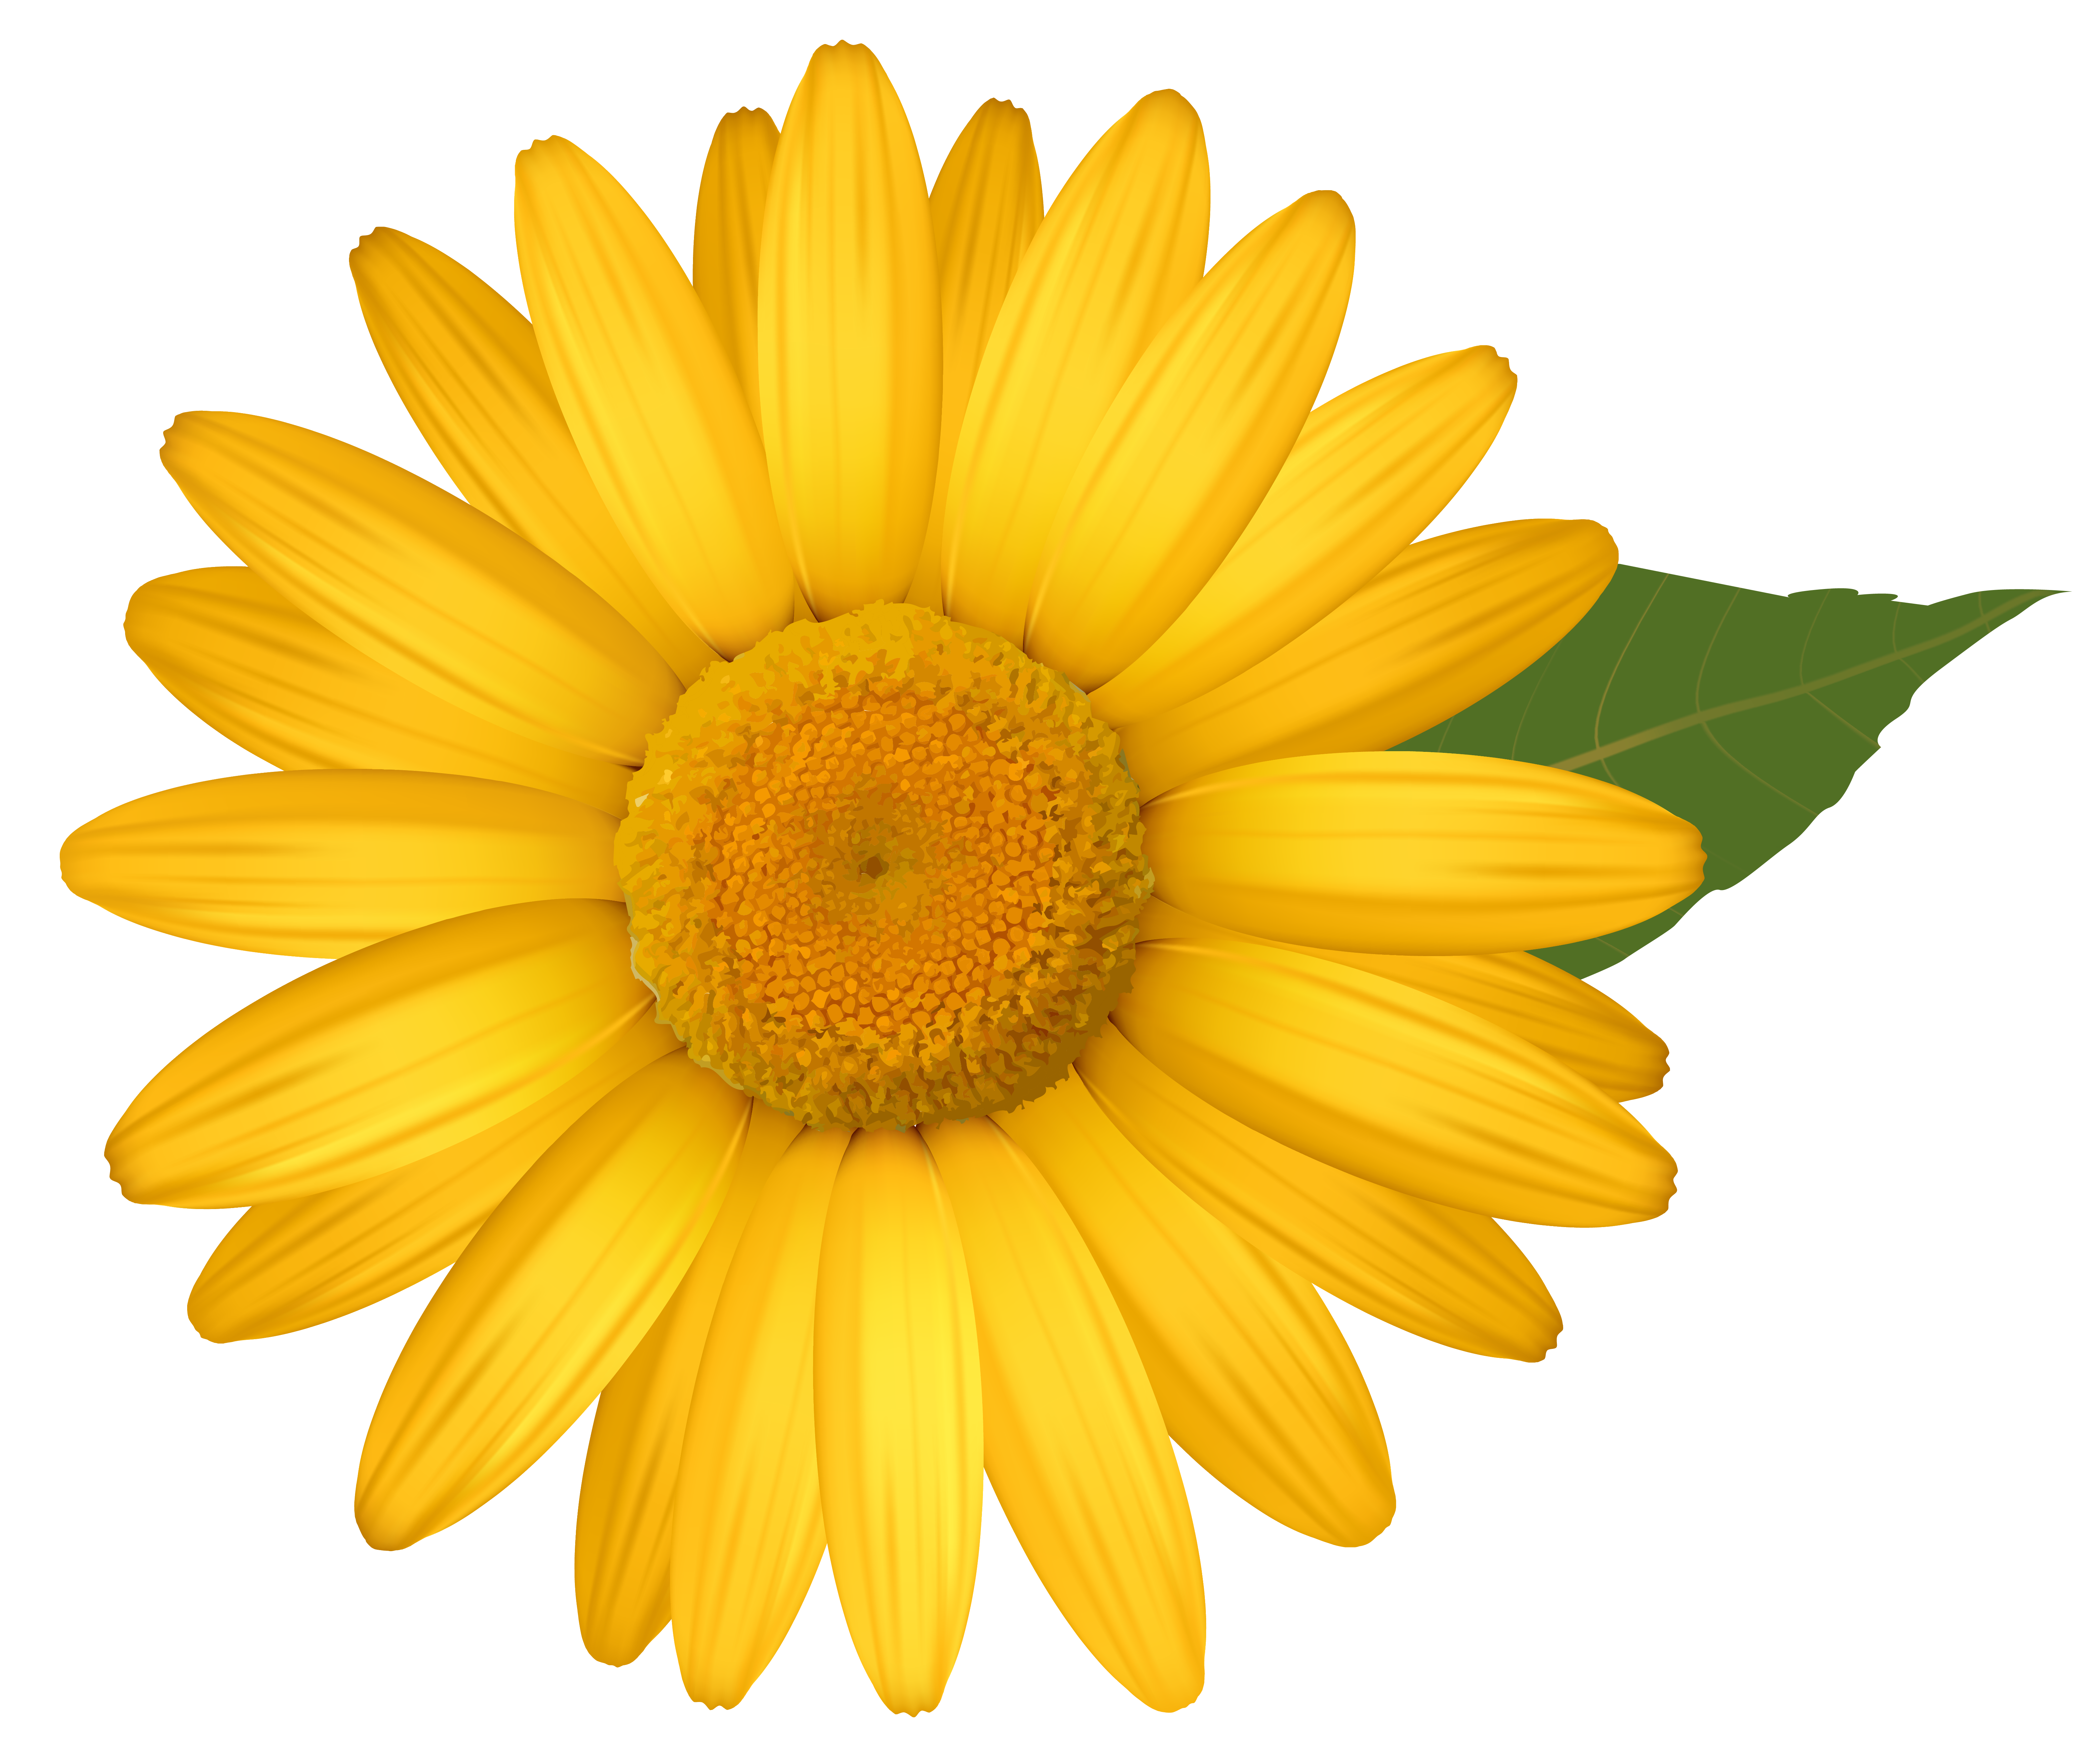 Daisy flower png. Yellow image gallery yopriceville